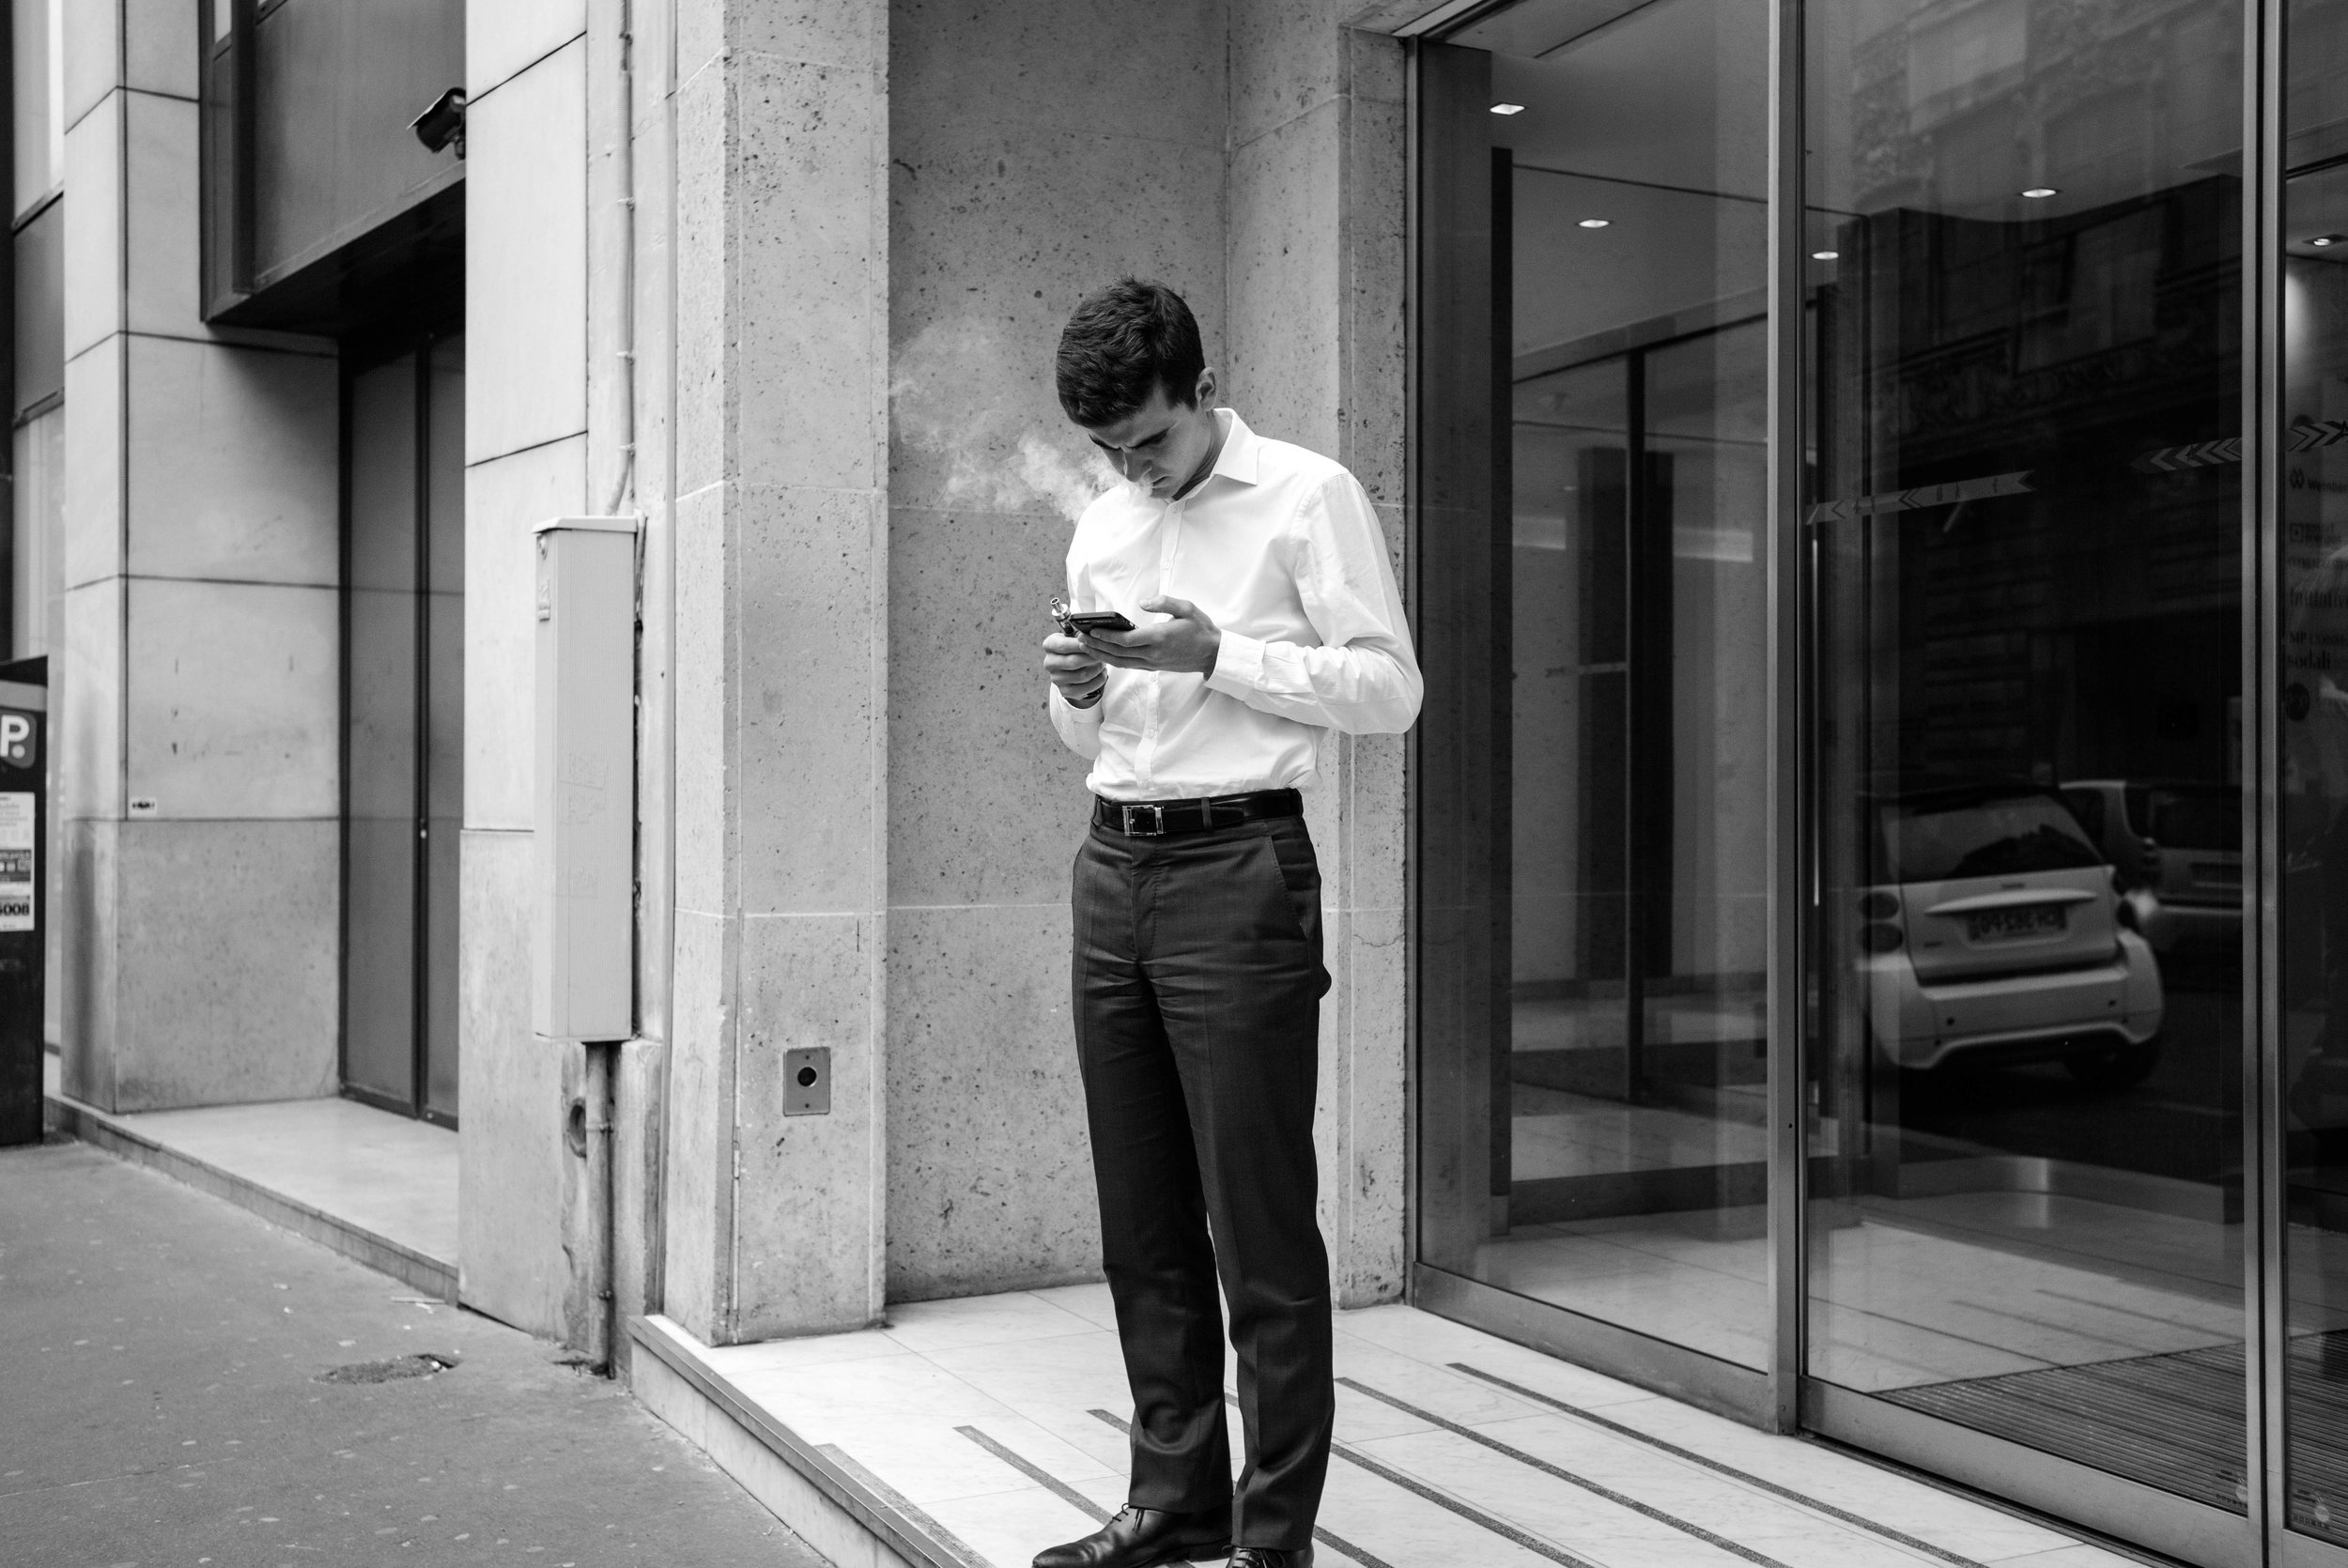 Honestly, there is nothing interesting about this street capture. Another man smoking in Paris. How very unoriginal.